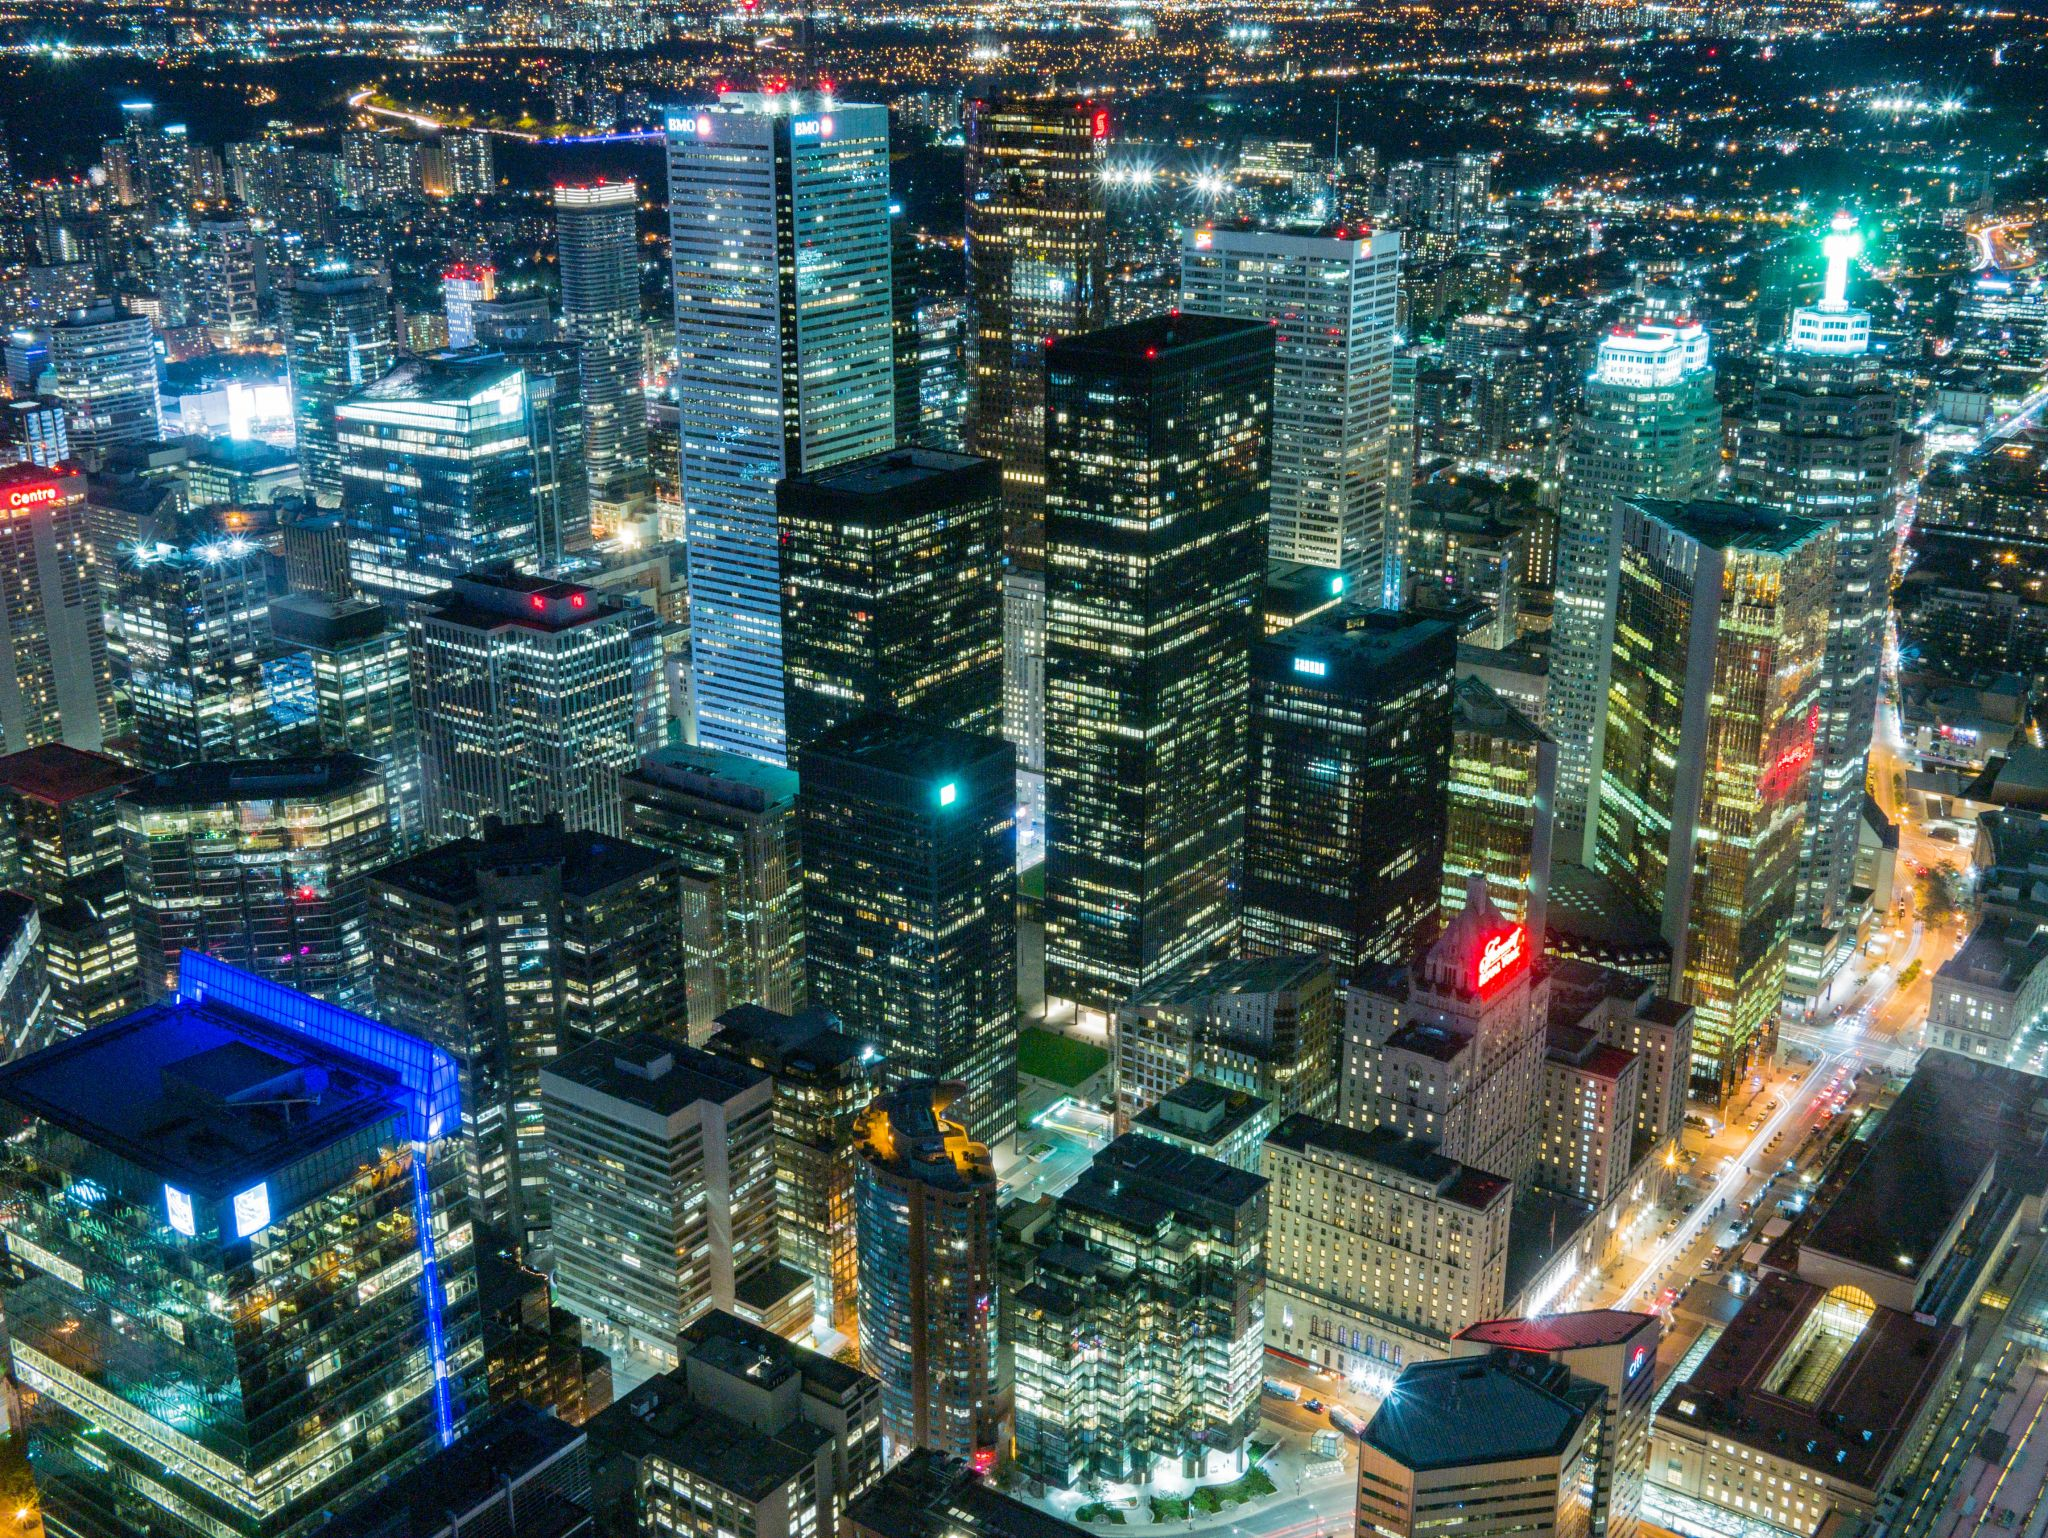 View from the CN Tower, Canada